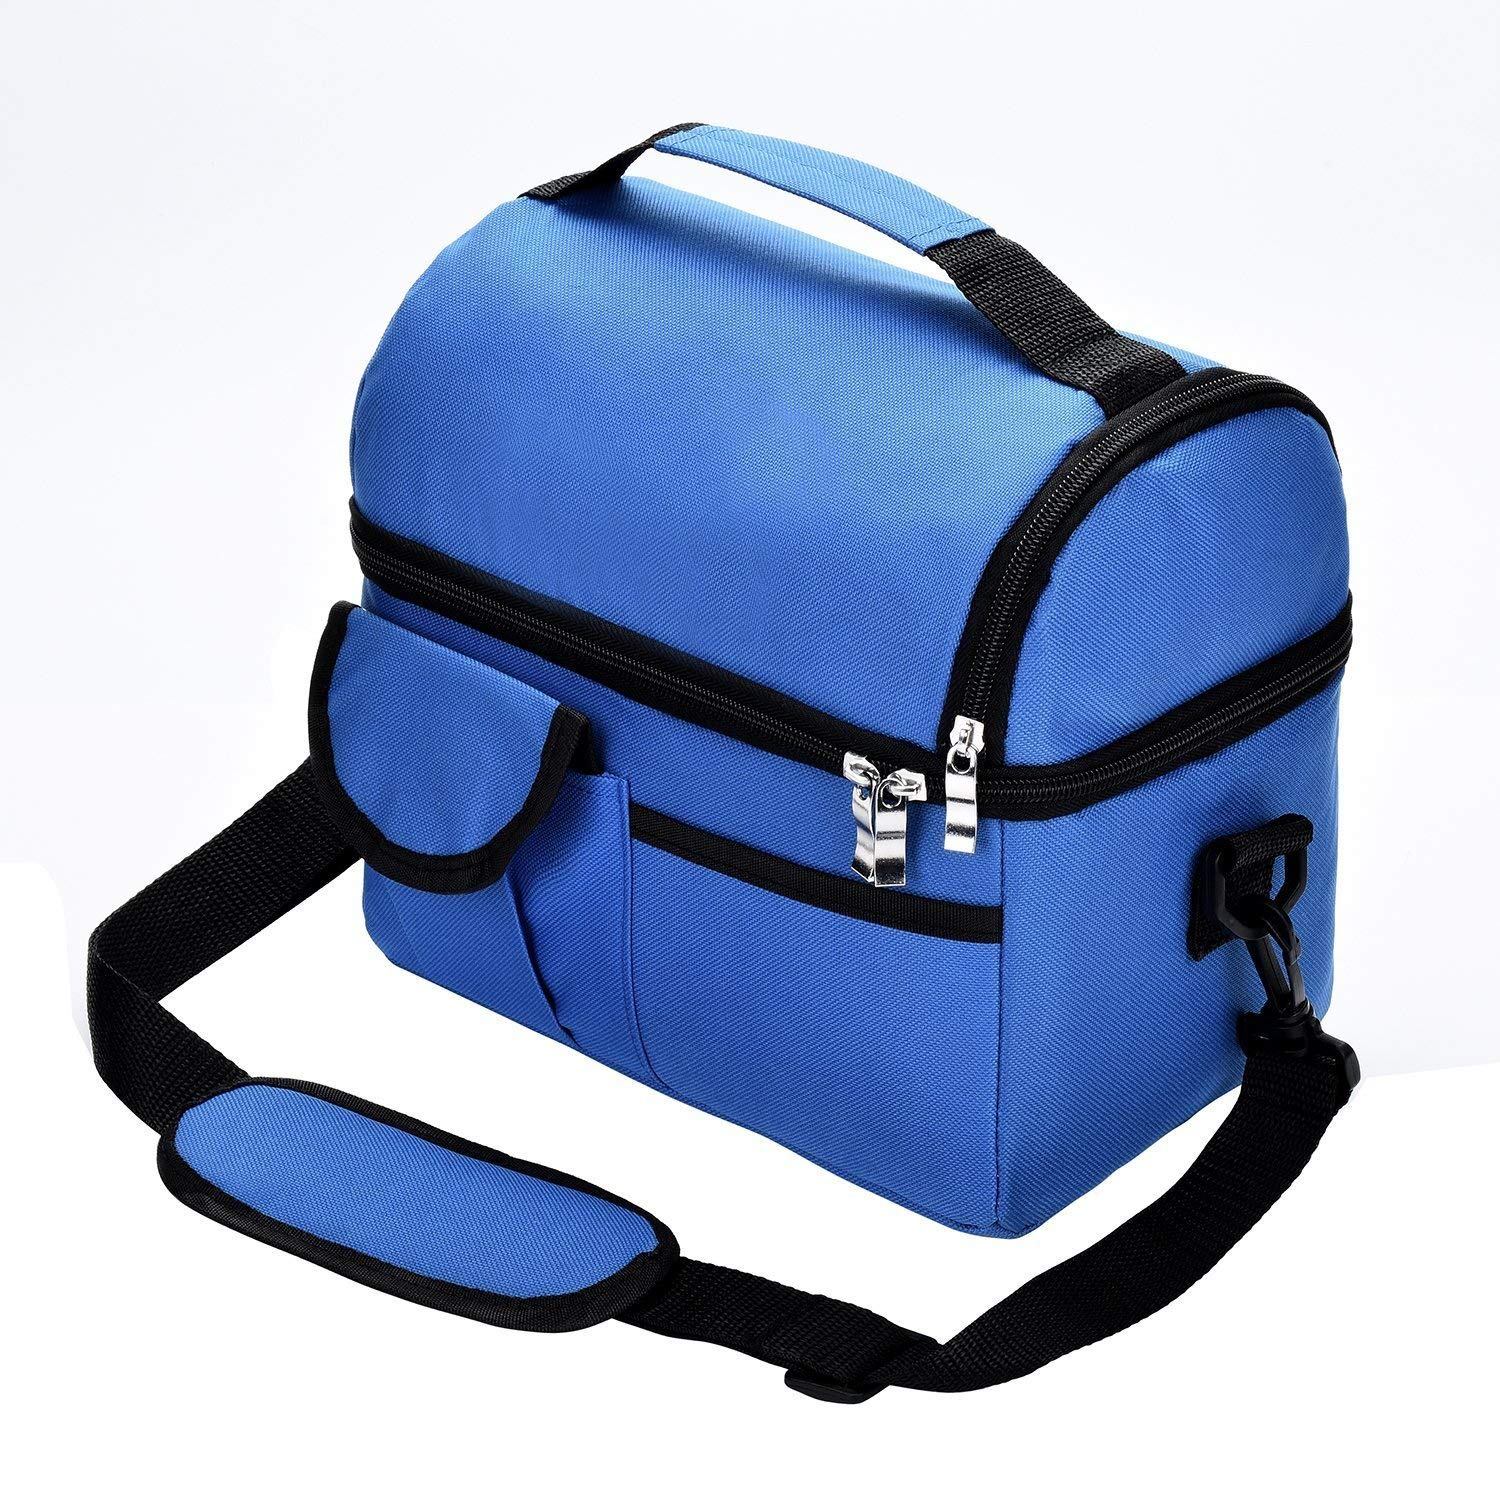 Insulated Lunch Bag,YOAYO Lunch Tote Bag with Adjustable Shoulder Strap(Detachable), Meal Prep Oxford Cloth Thermal Bento Bag for Office/School/Picnic,Cooler Lunch Bag for Women/Men/Kids,Blue